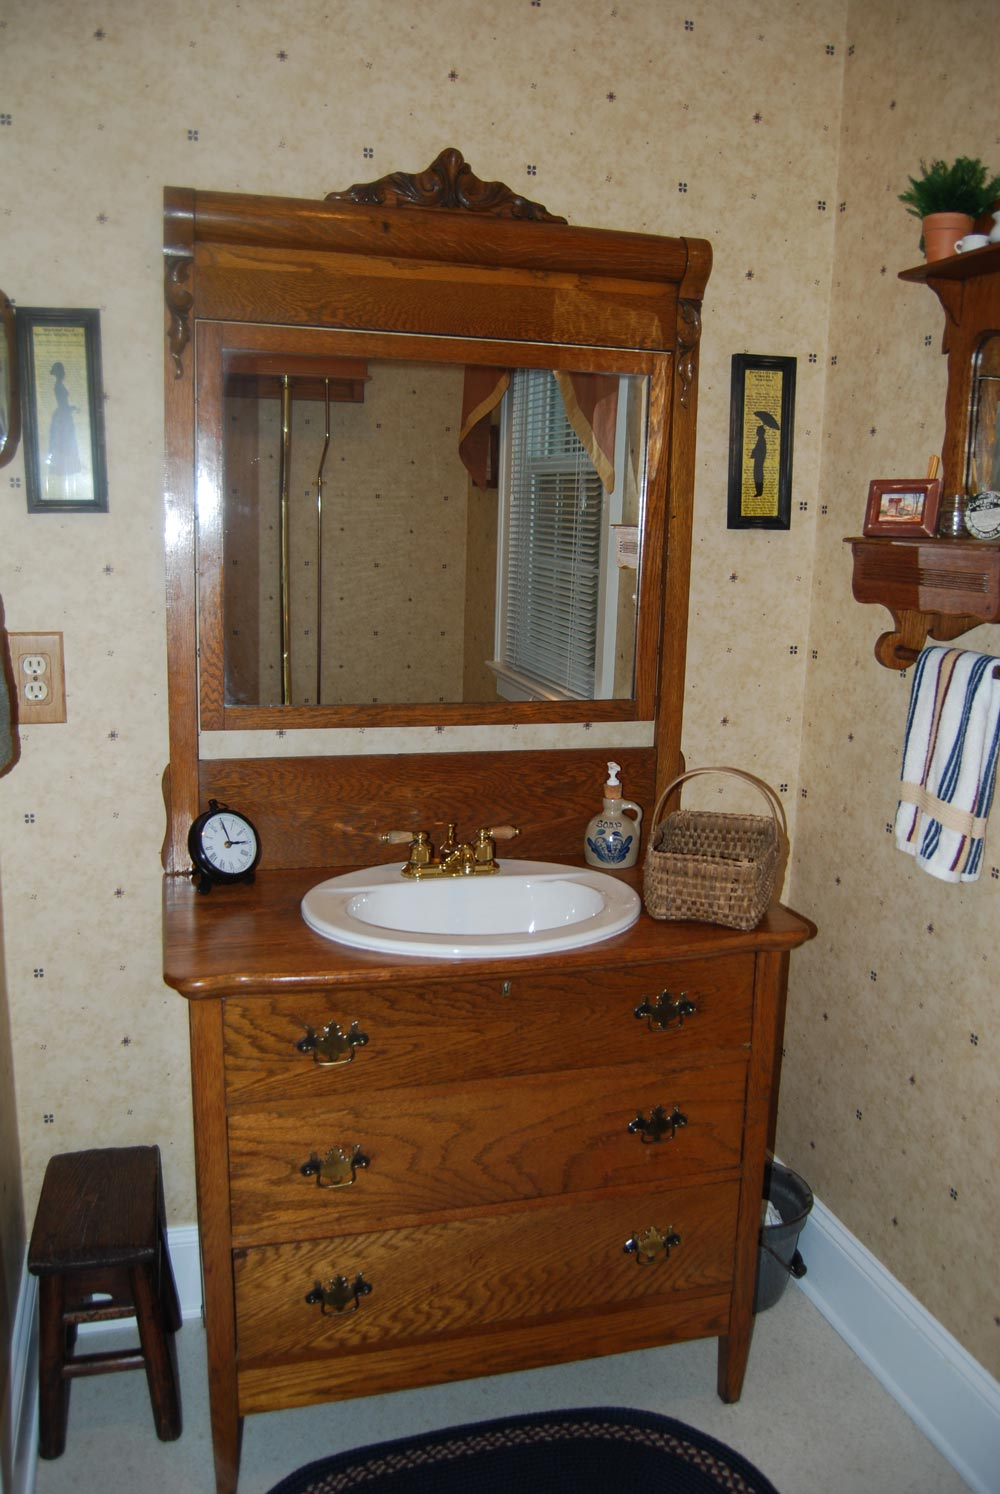 Bathroom Vintage Style Giving The Old Vanity Second Chance Antique Dresser